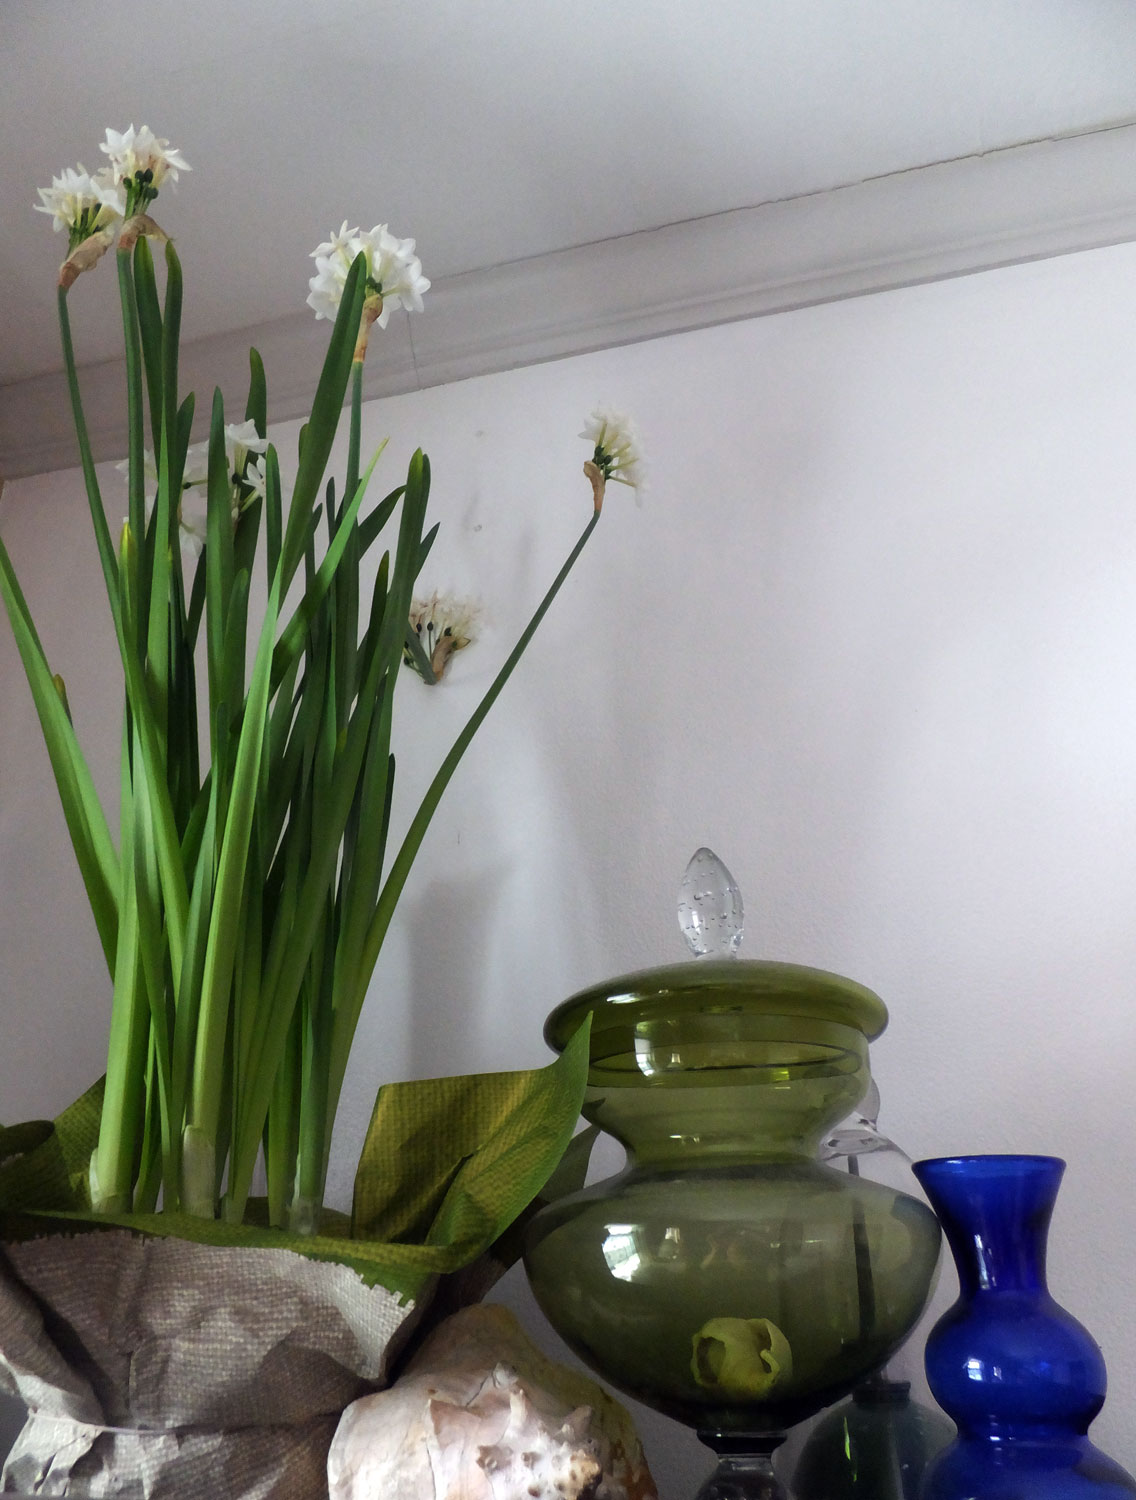 Paper whites blooming